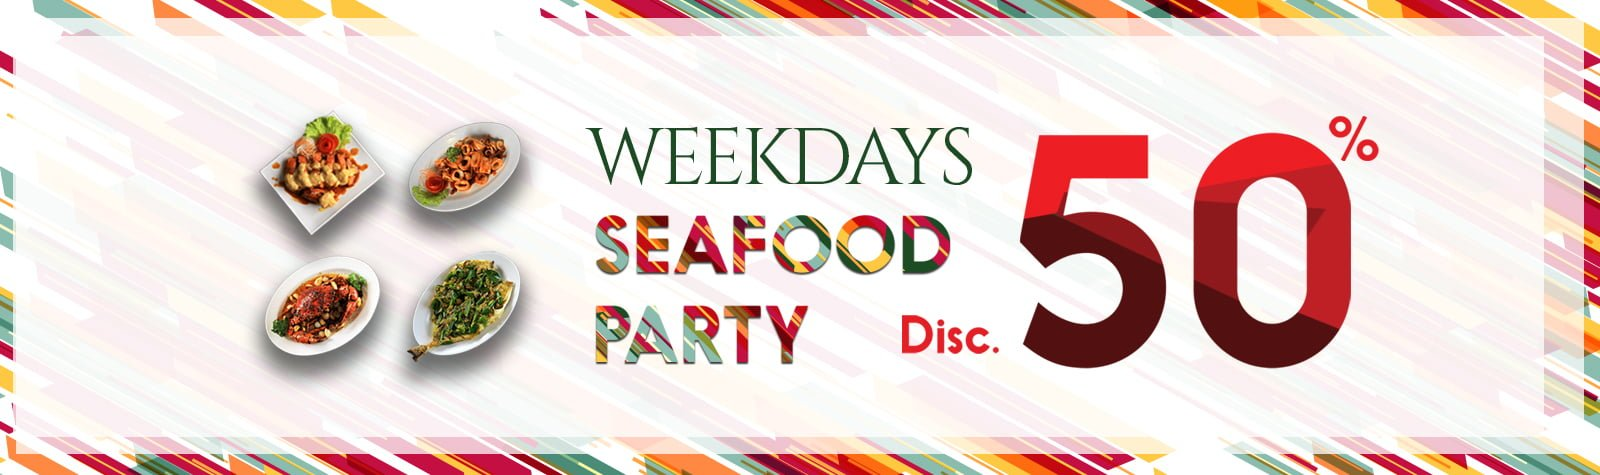 Weekdays Seafood Party